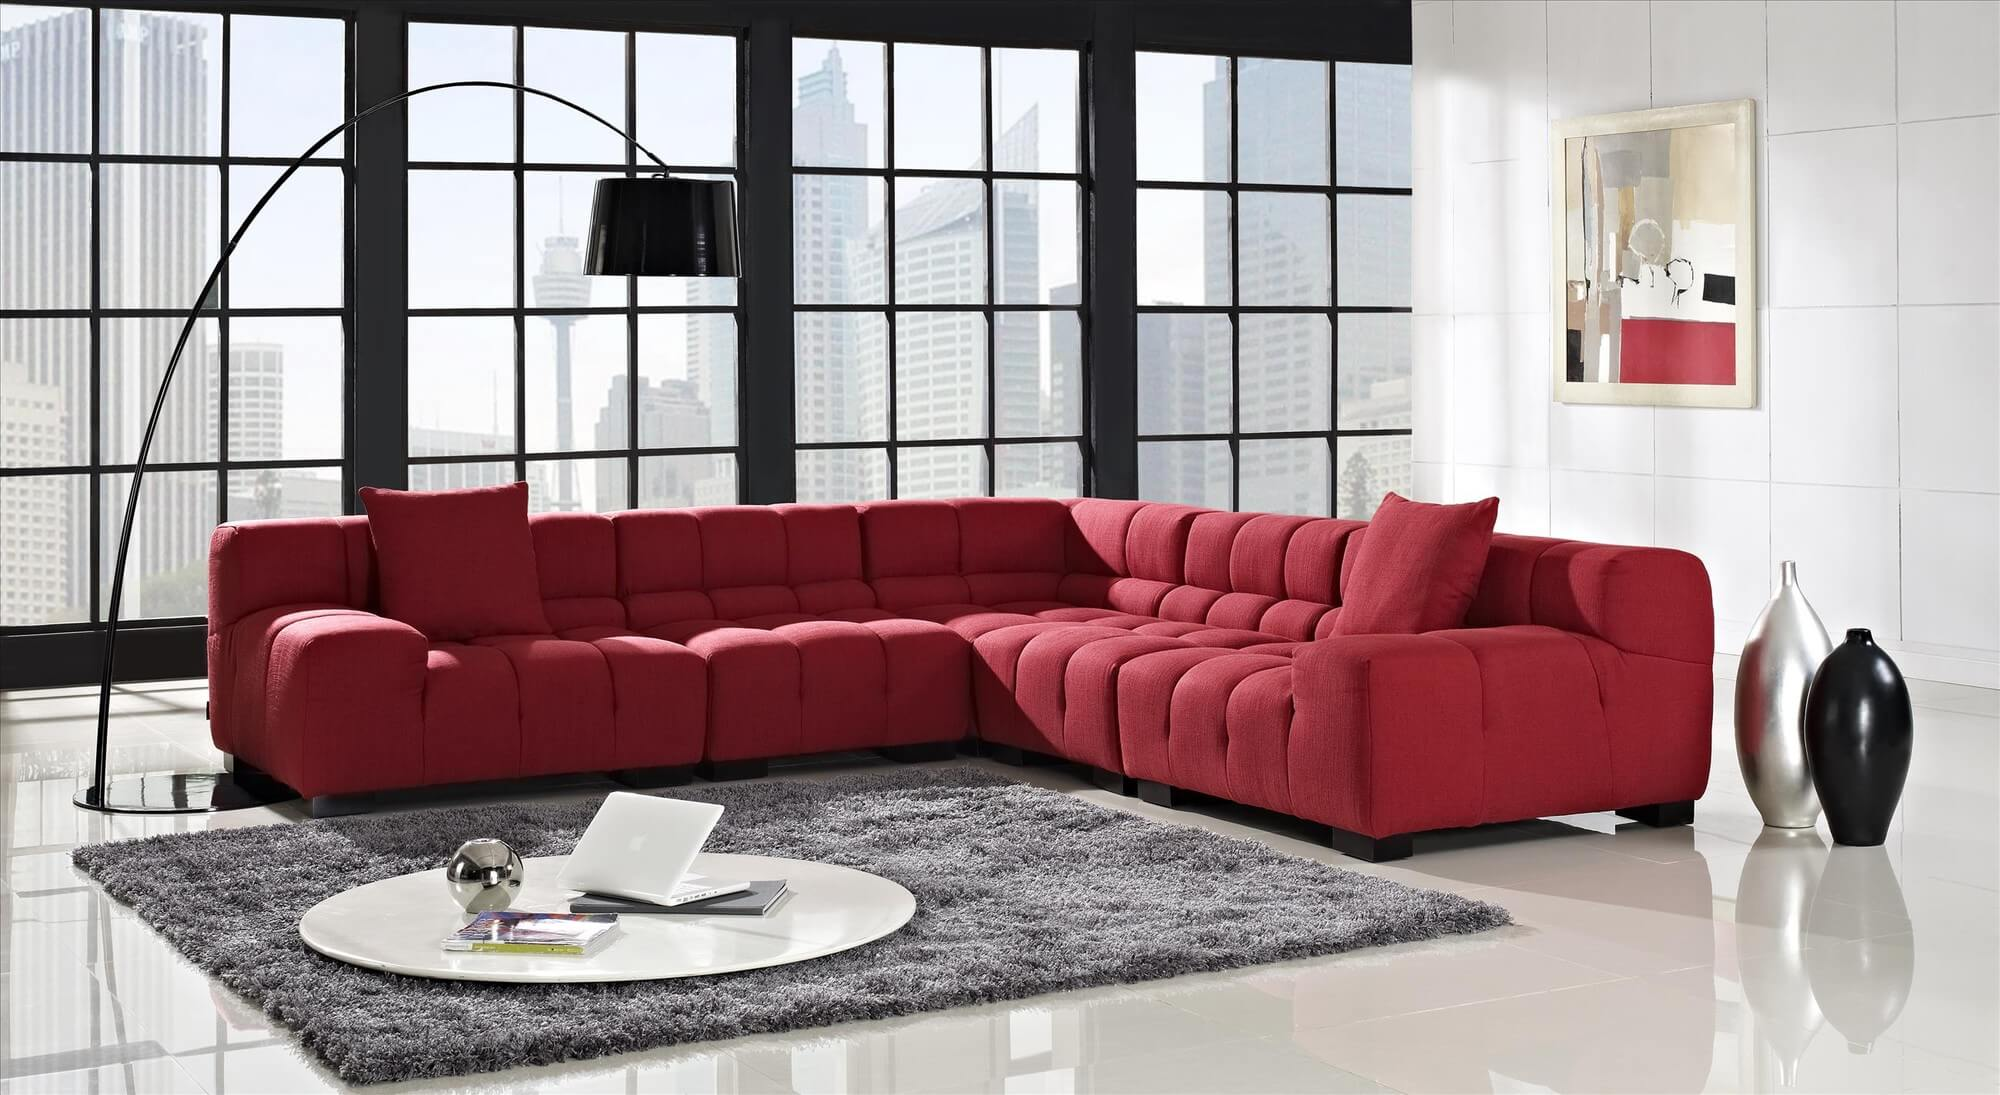 Great Room Decorating Ideas Brown Leather Furniture